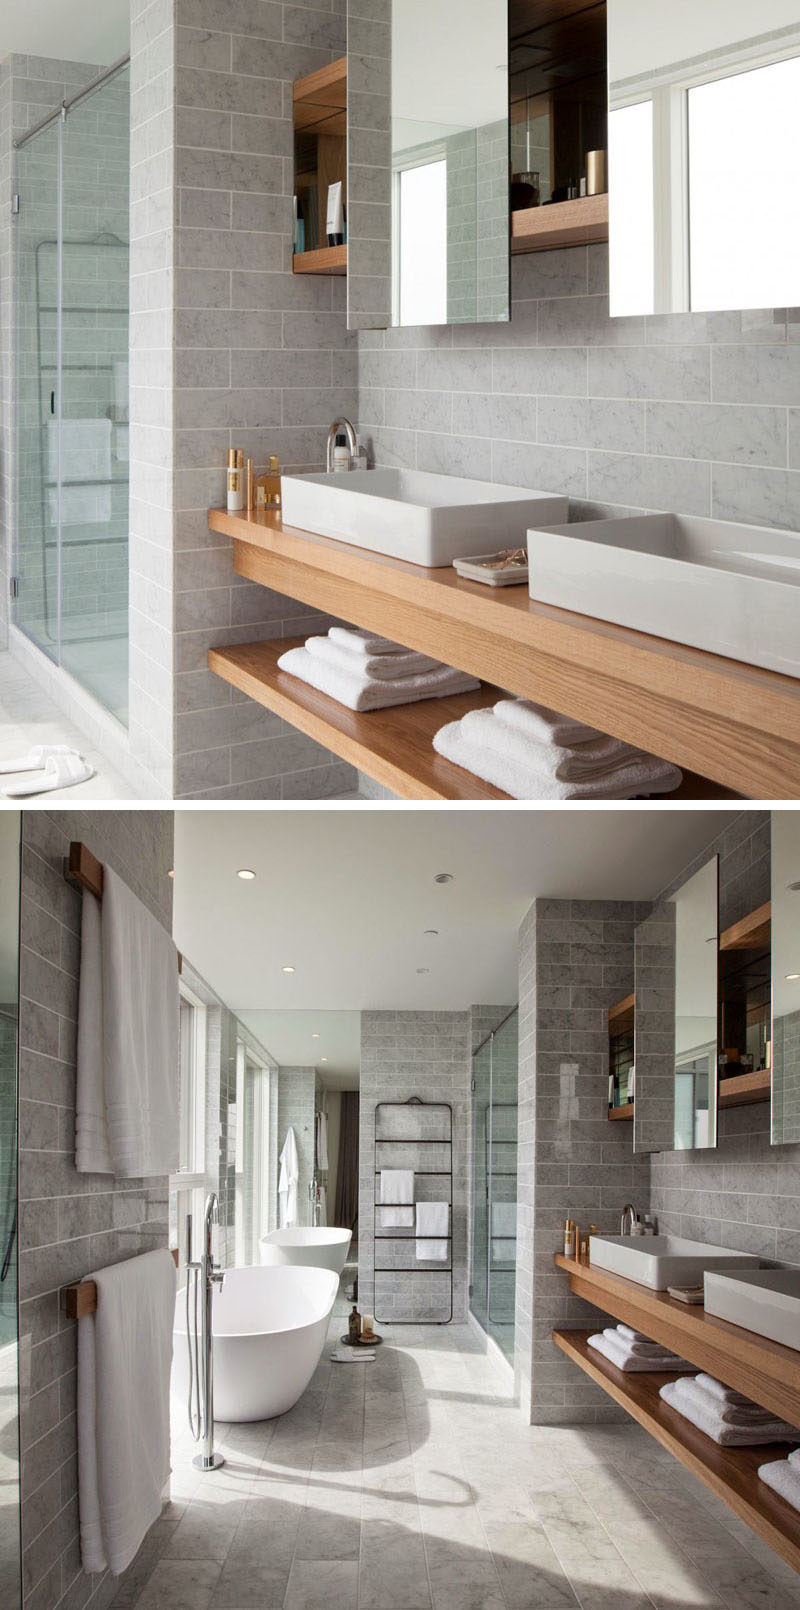 15 Examples Of Bathroom Vanities That Have Open Shelving // This Vanity  Features Multiple Sinks